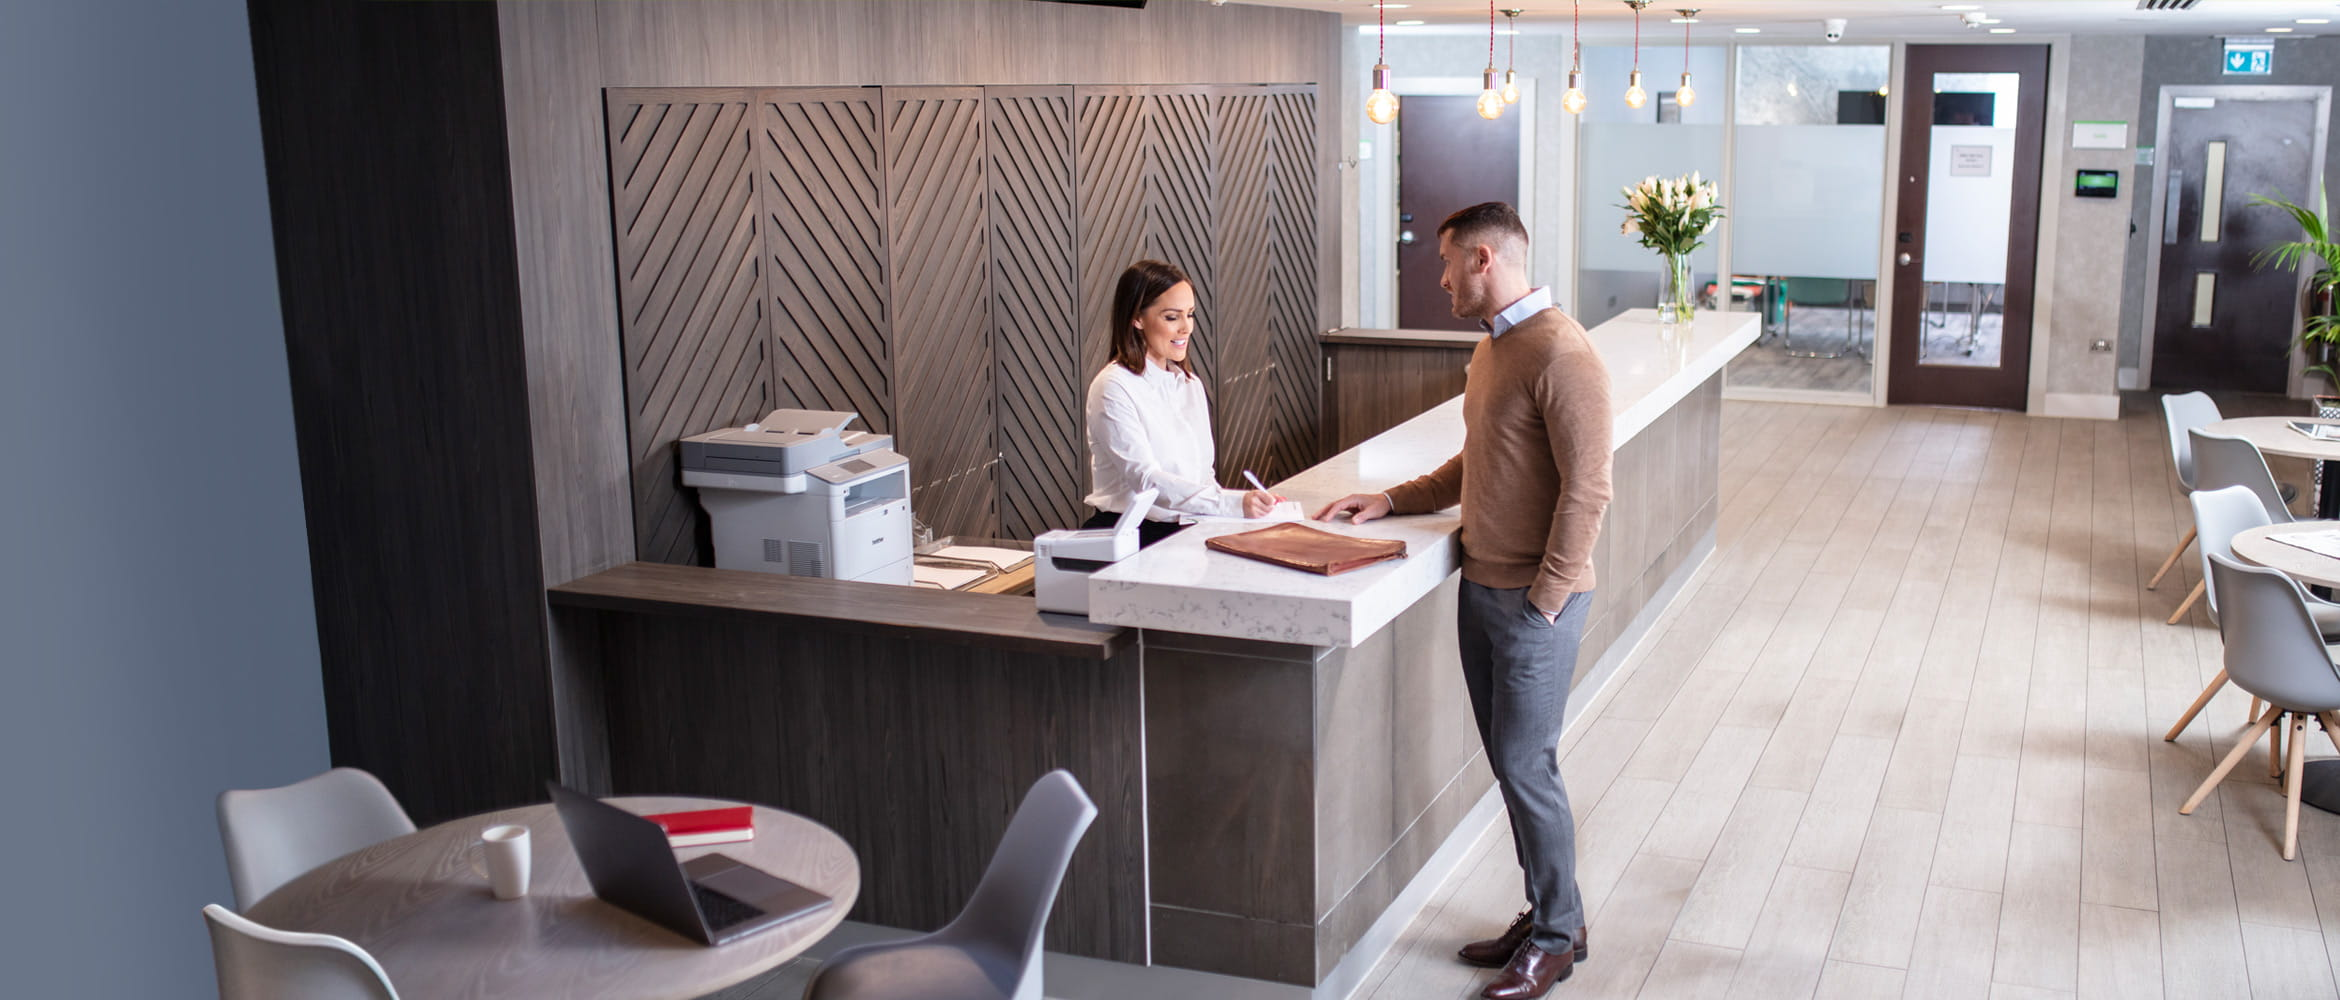 Store staff member talking with customer in hotel environment